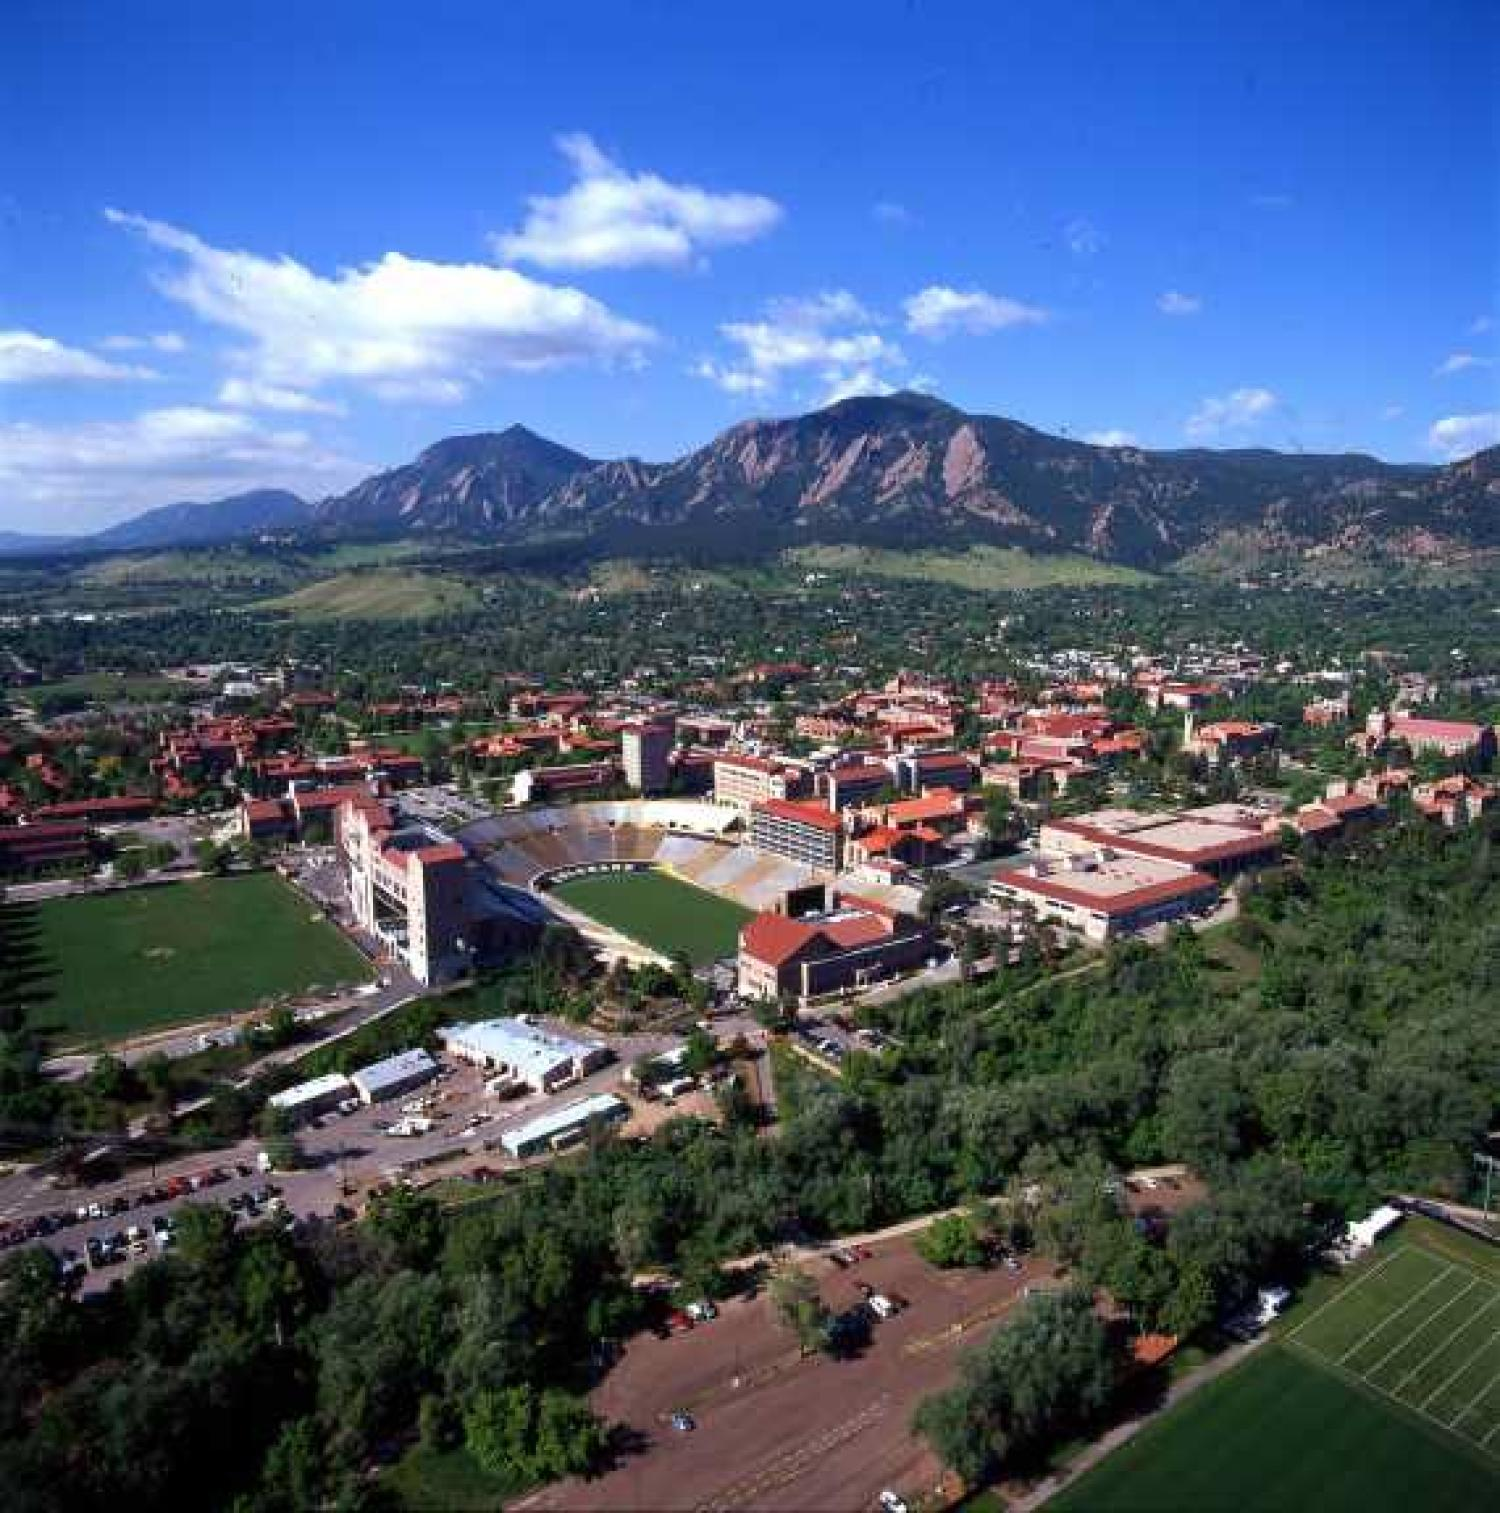 Being A Buff The University Of Colorado Is Consistently Voted One Of The  Most Beautiful Campuses